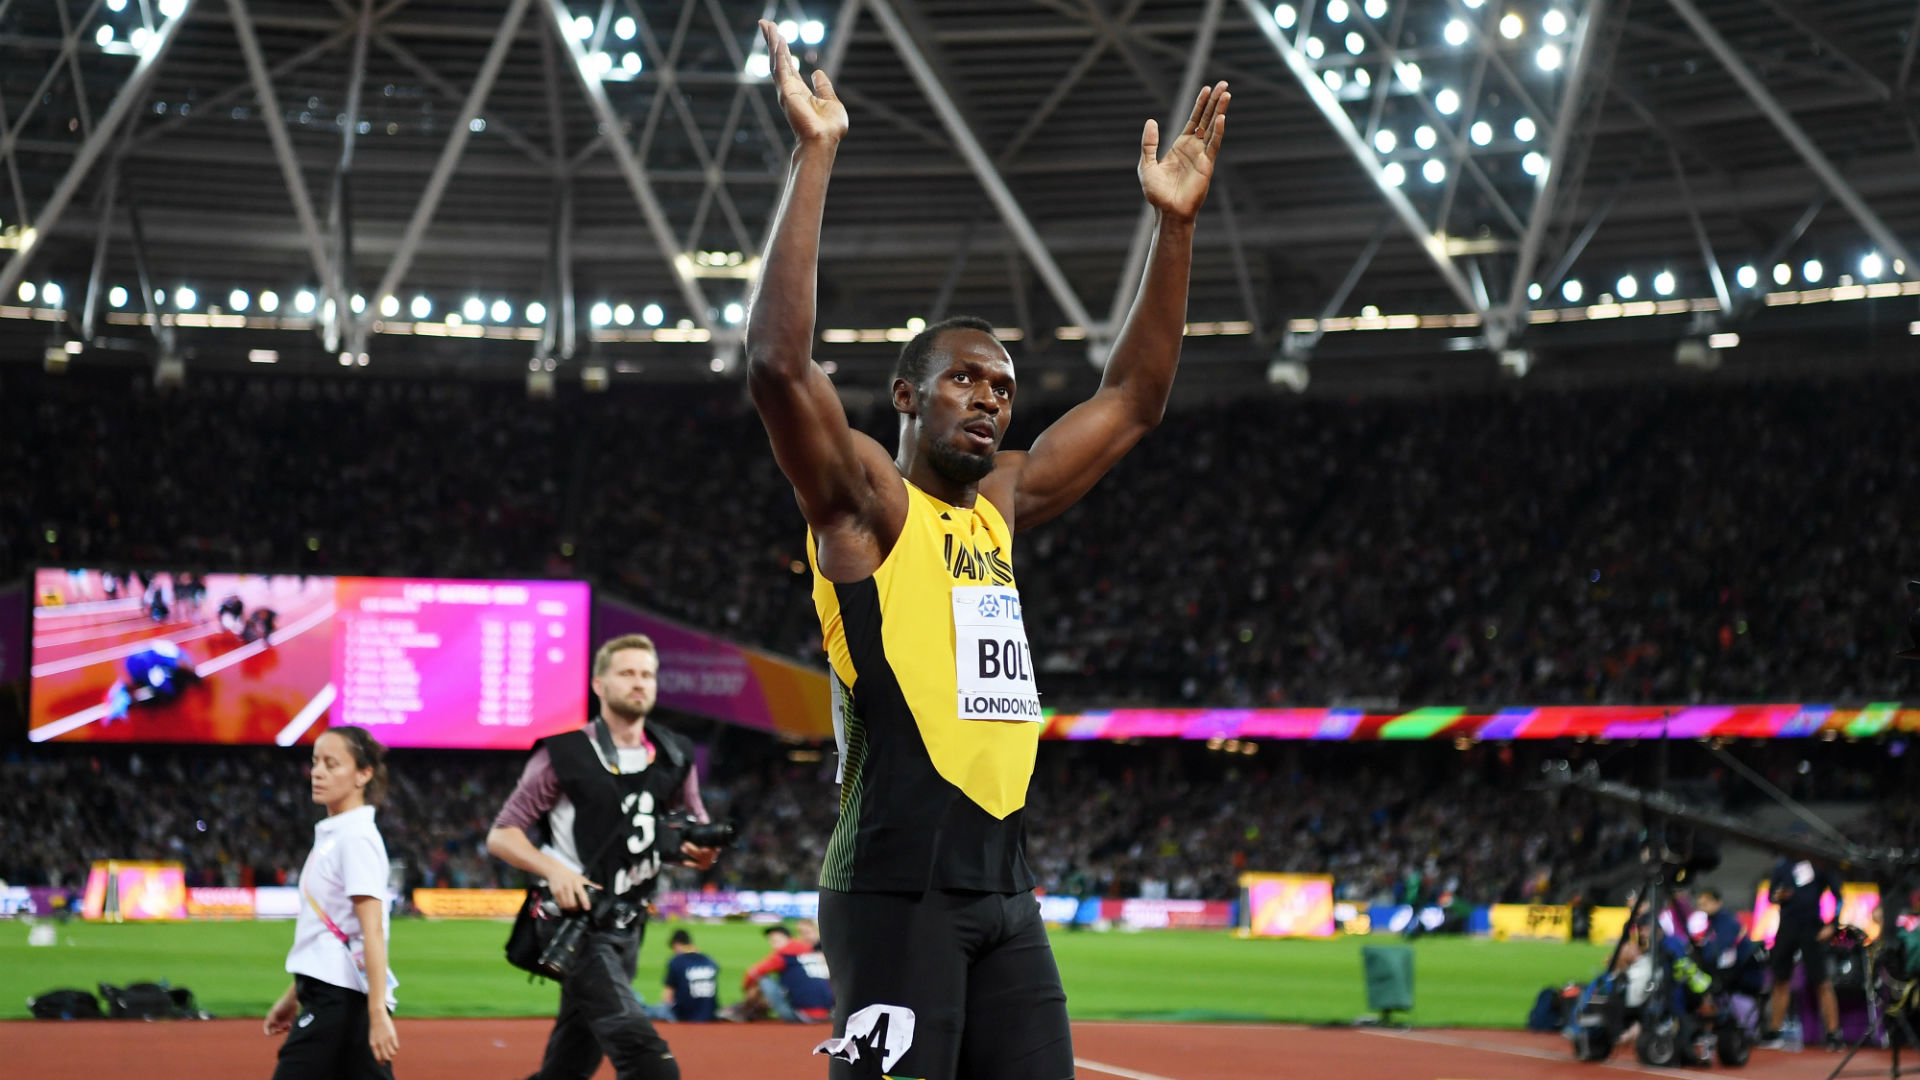 IAAF World Championships 2017: 8 stunning photos from Usain Bolt's final 100-meter race